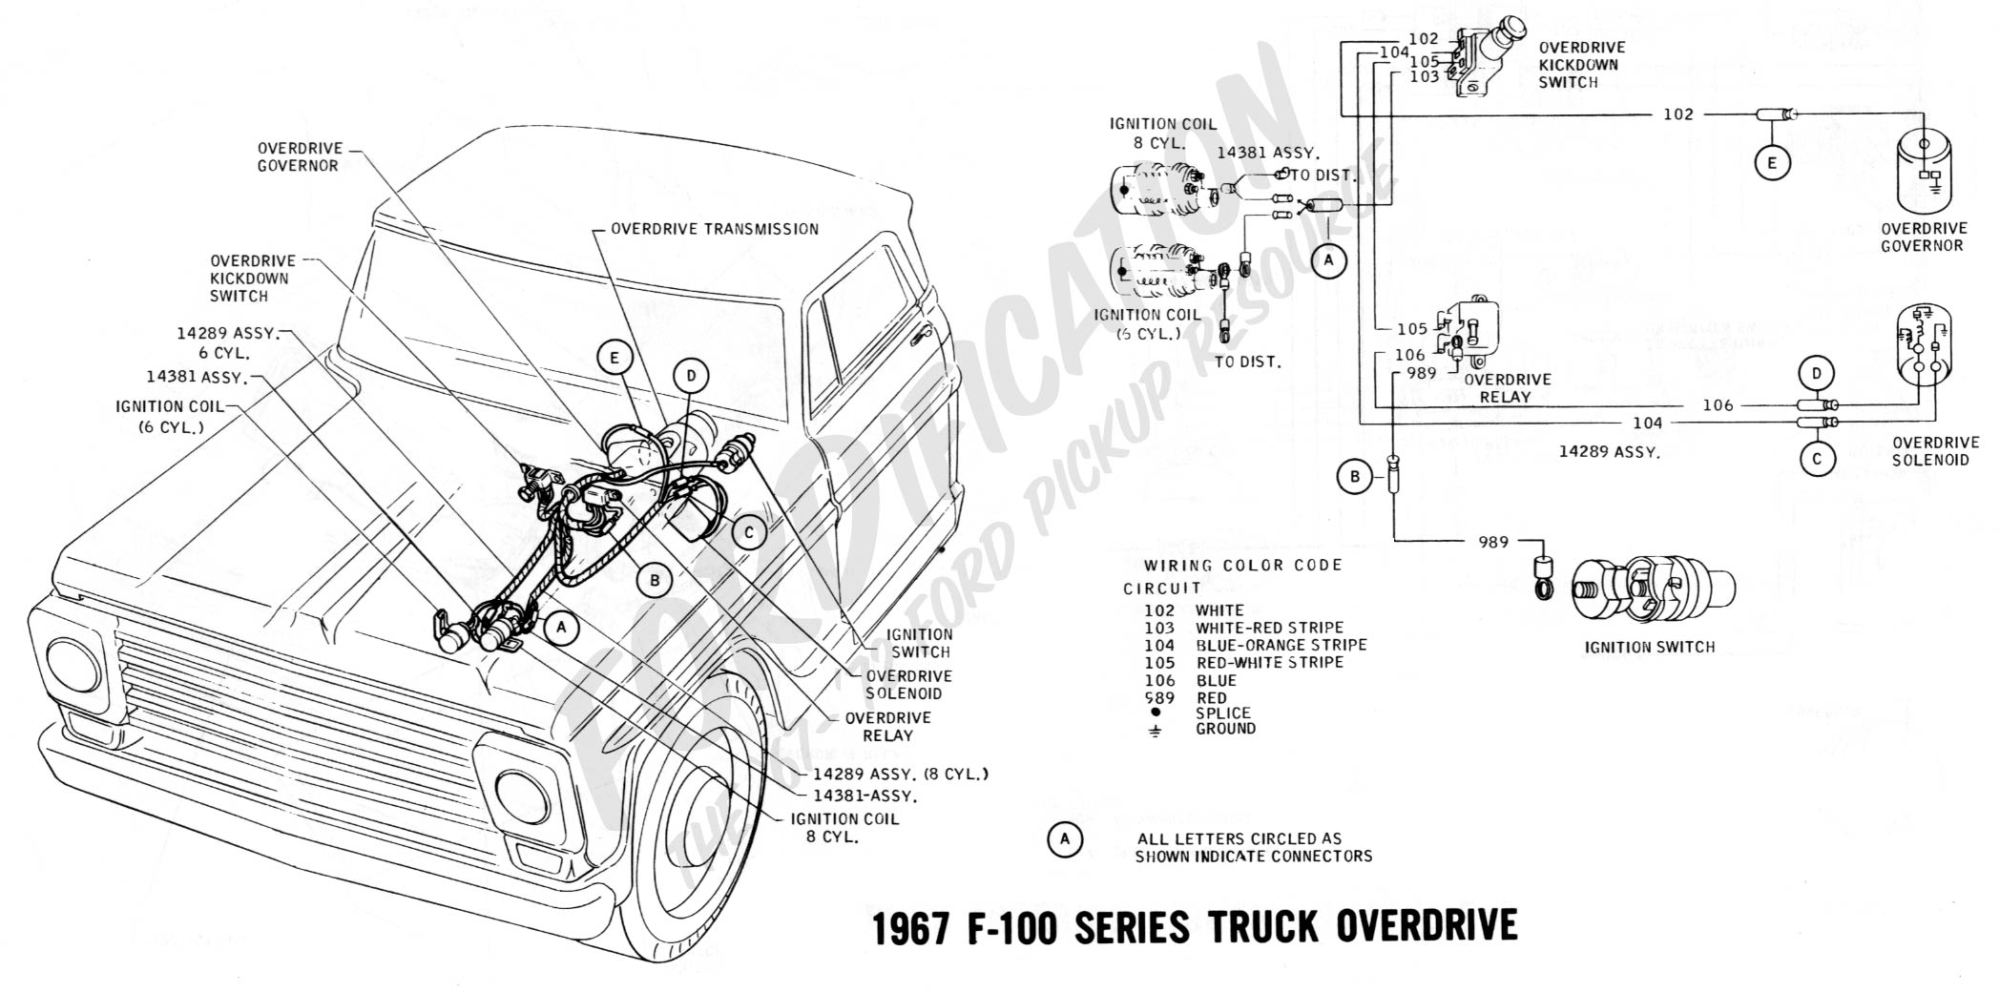 hight resolution of ford truck technical drawings and schematics section h wiring1967 f 100 series overdrive 1968 wiring schematics